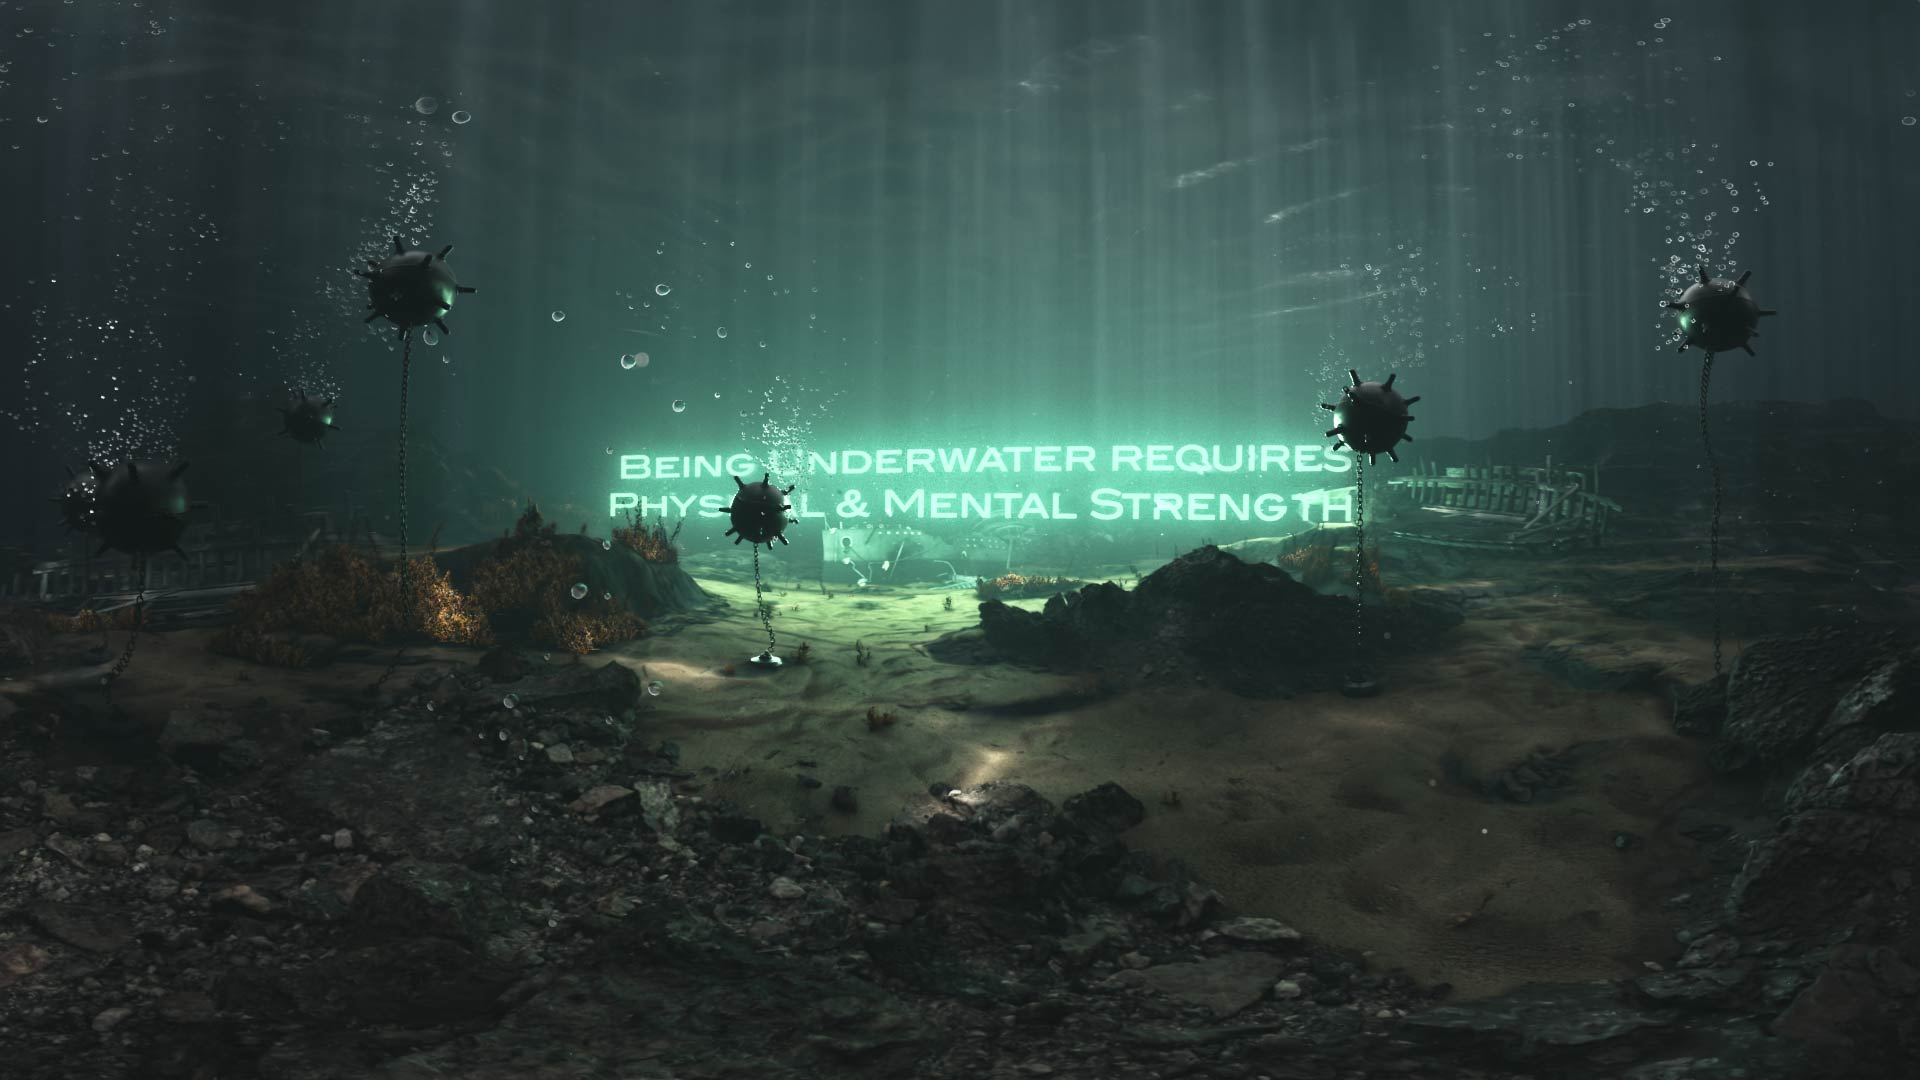 3D rendering of a submarine minefield with a luminescent text